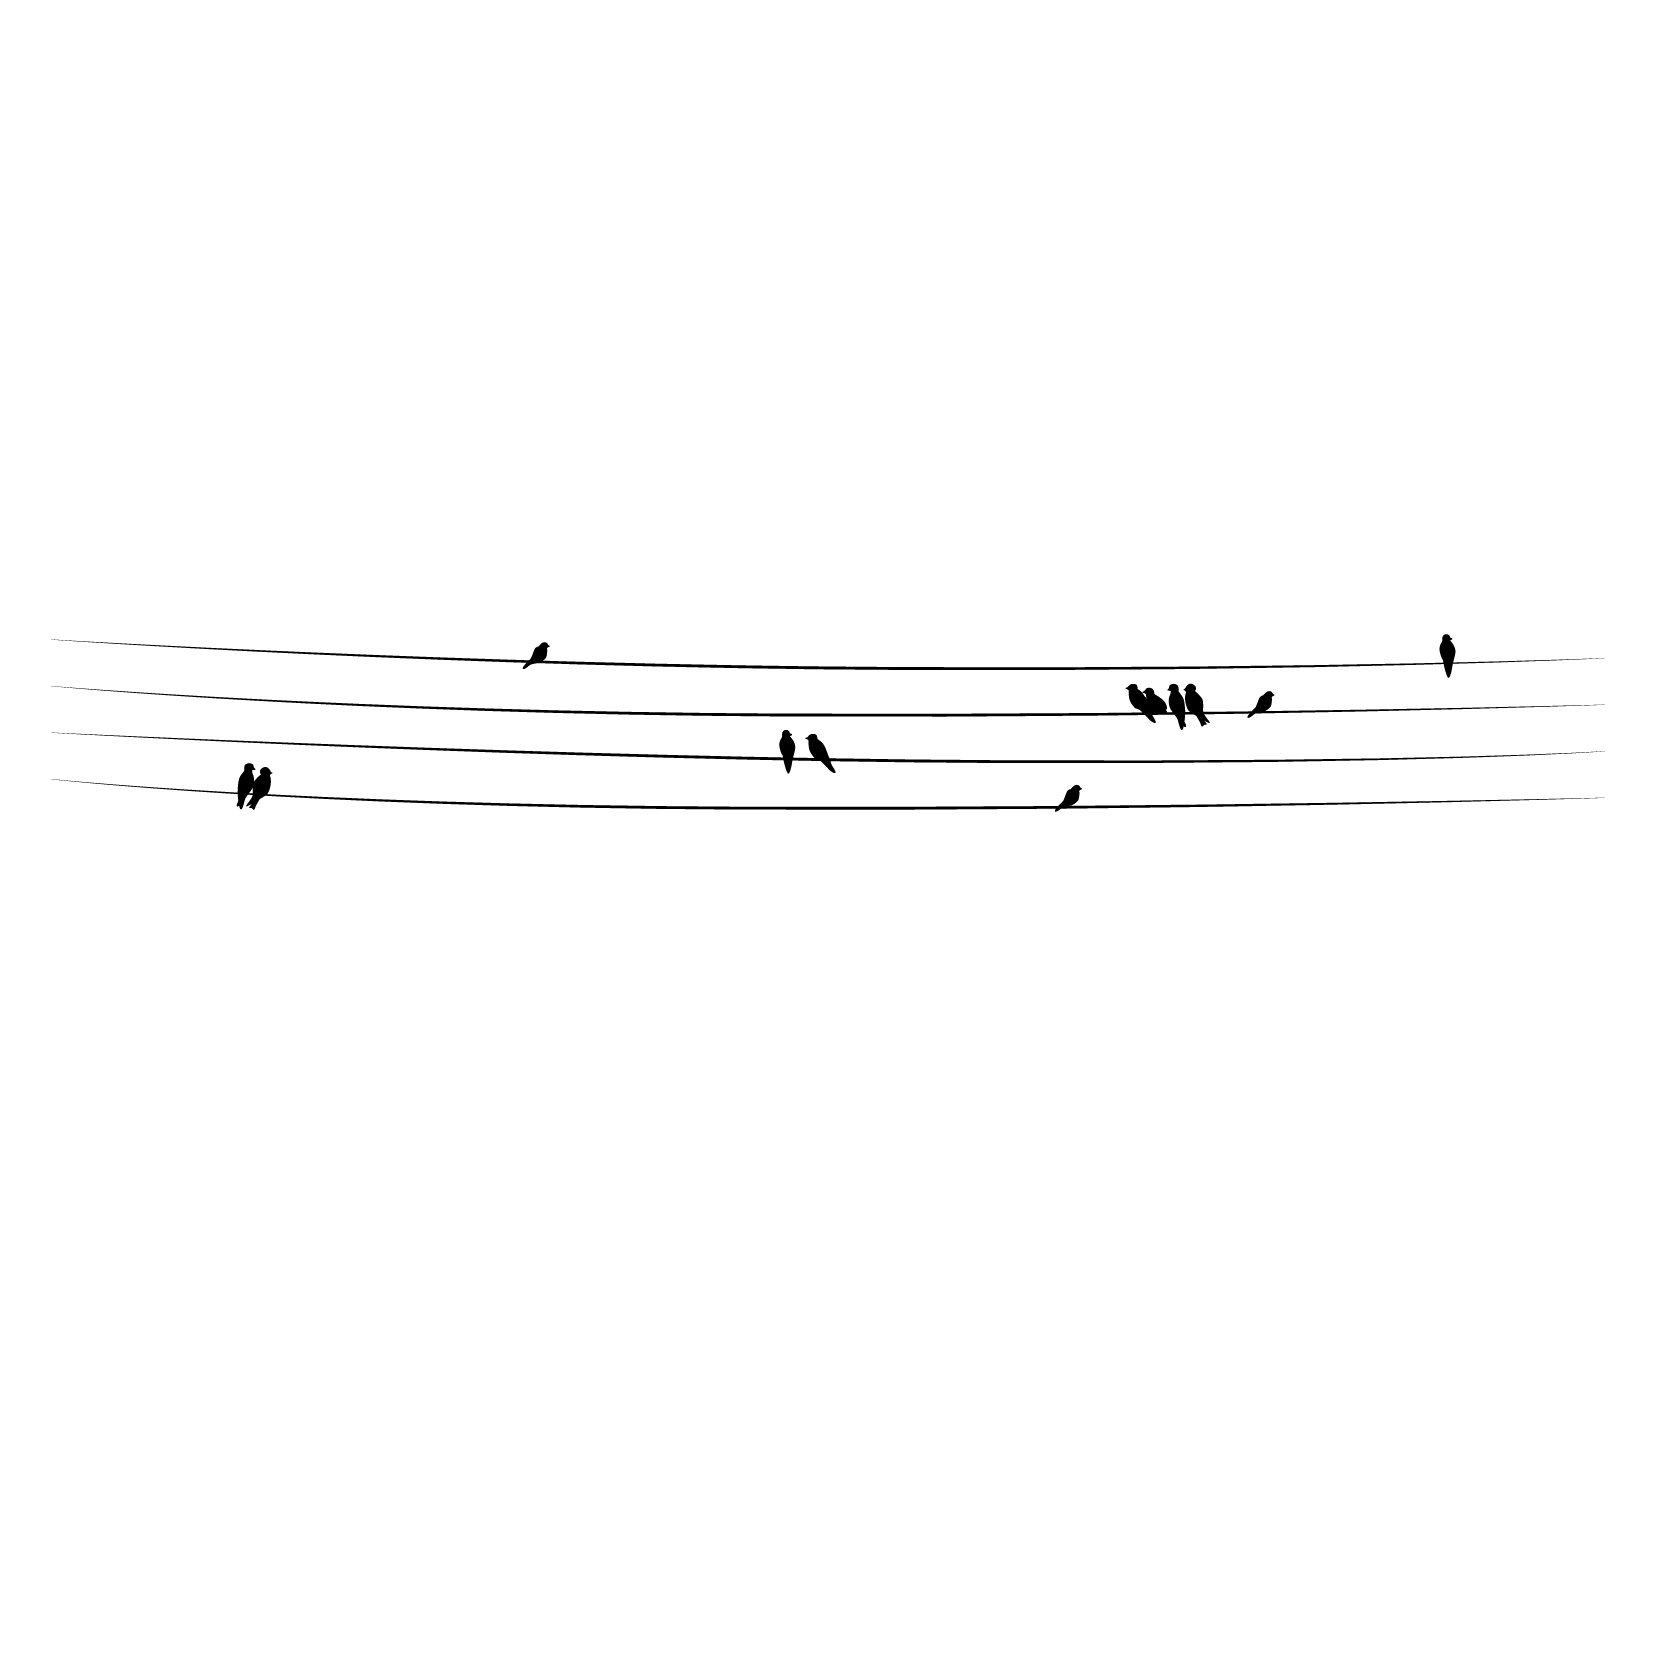 Birds on Powerlines - Black, Large - Vinyl Wall Art Decal for Homes, Offices, Kids Rooms, Nurseries, Schools, High Schools, Colleges, Universities, Interior Designers, Architects, Remodelers